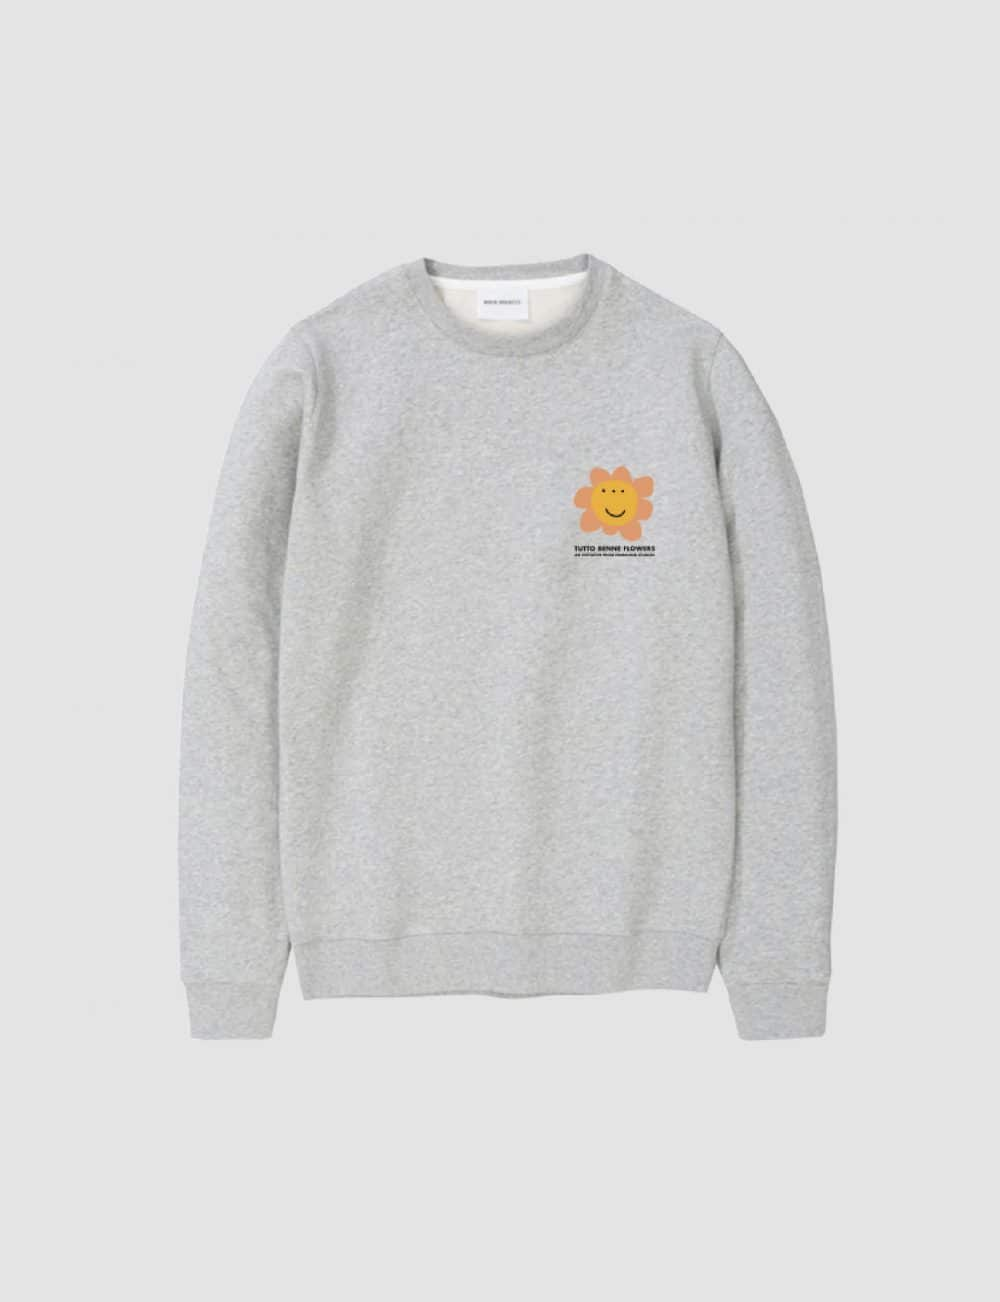 Castart - Edmmond Tutto bene sweater - Grey